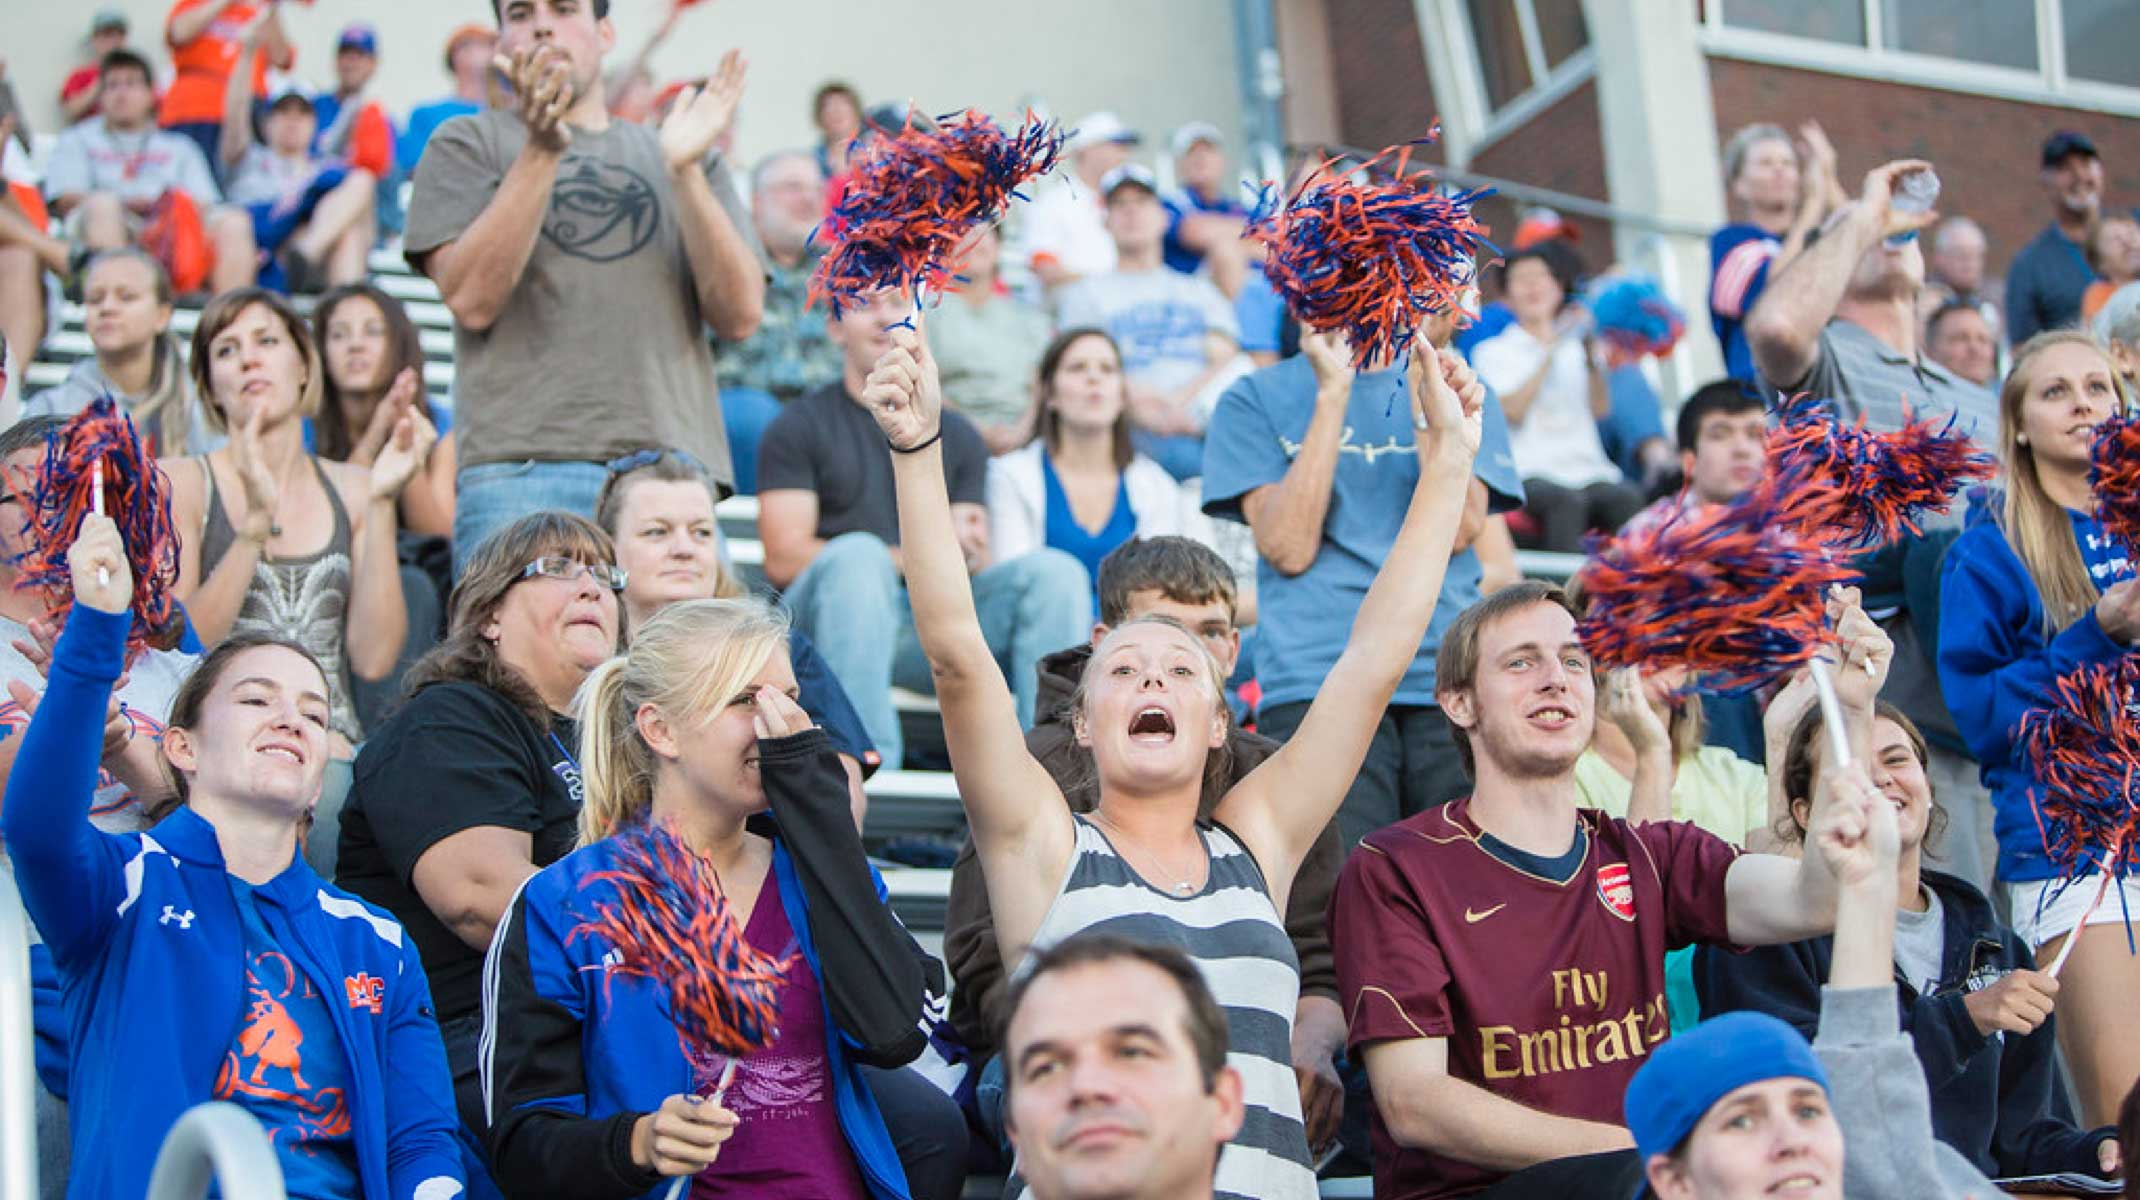 Macalester students cheering in the stadium stands.